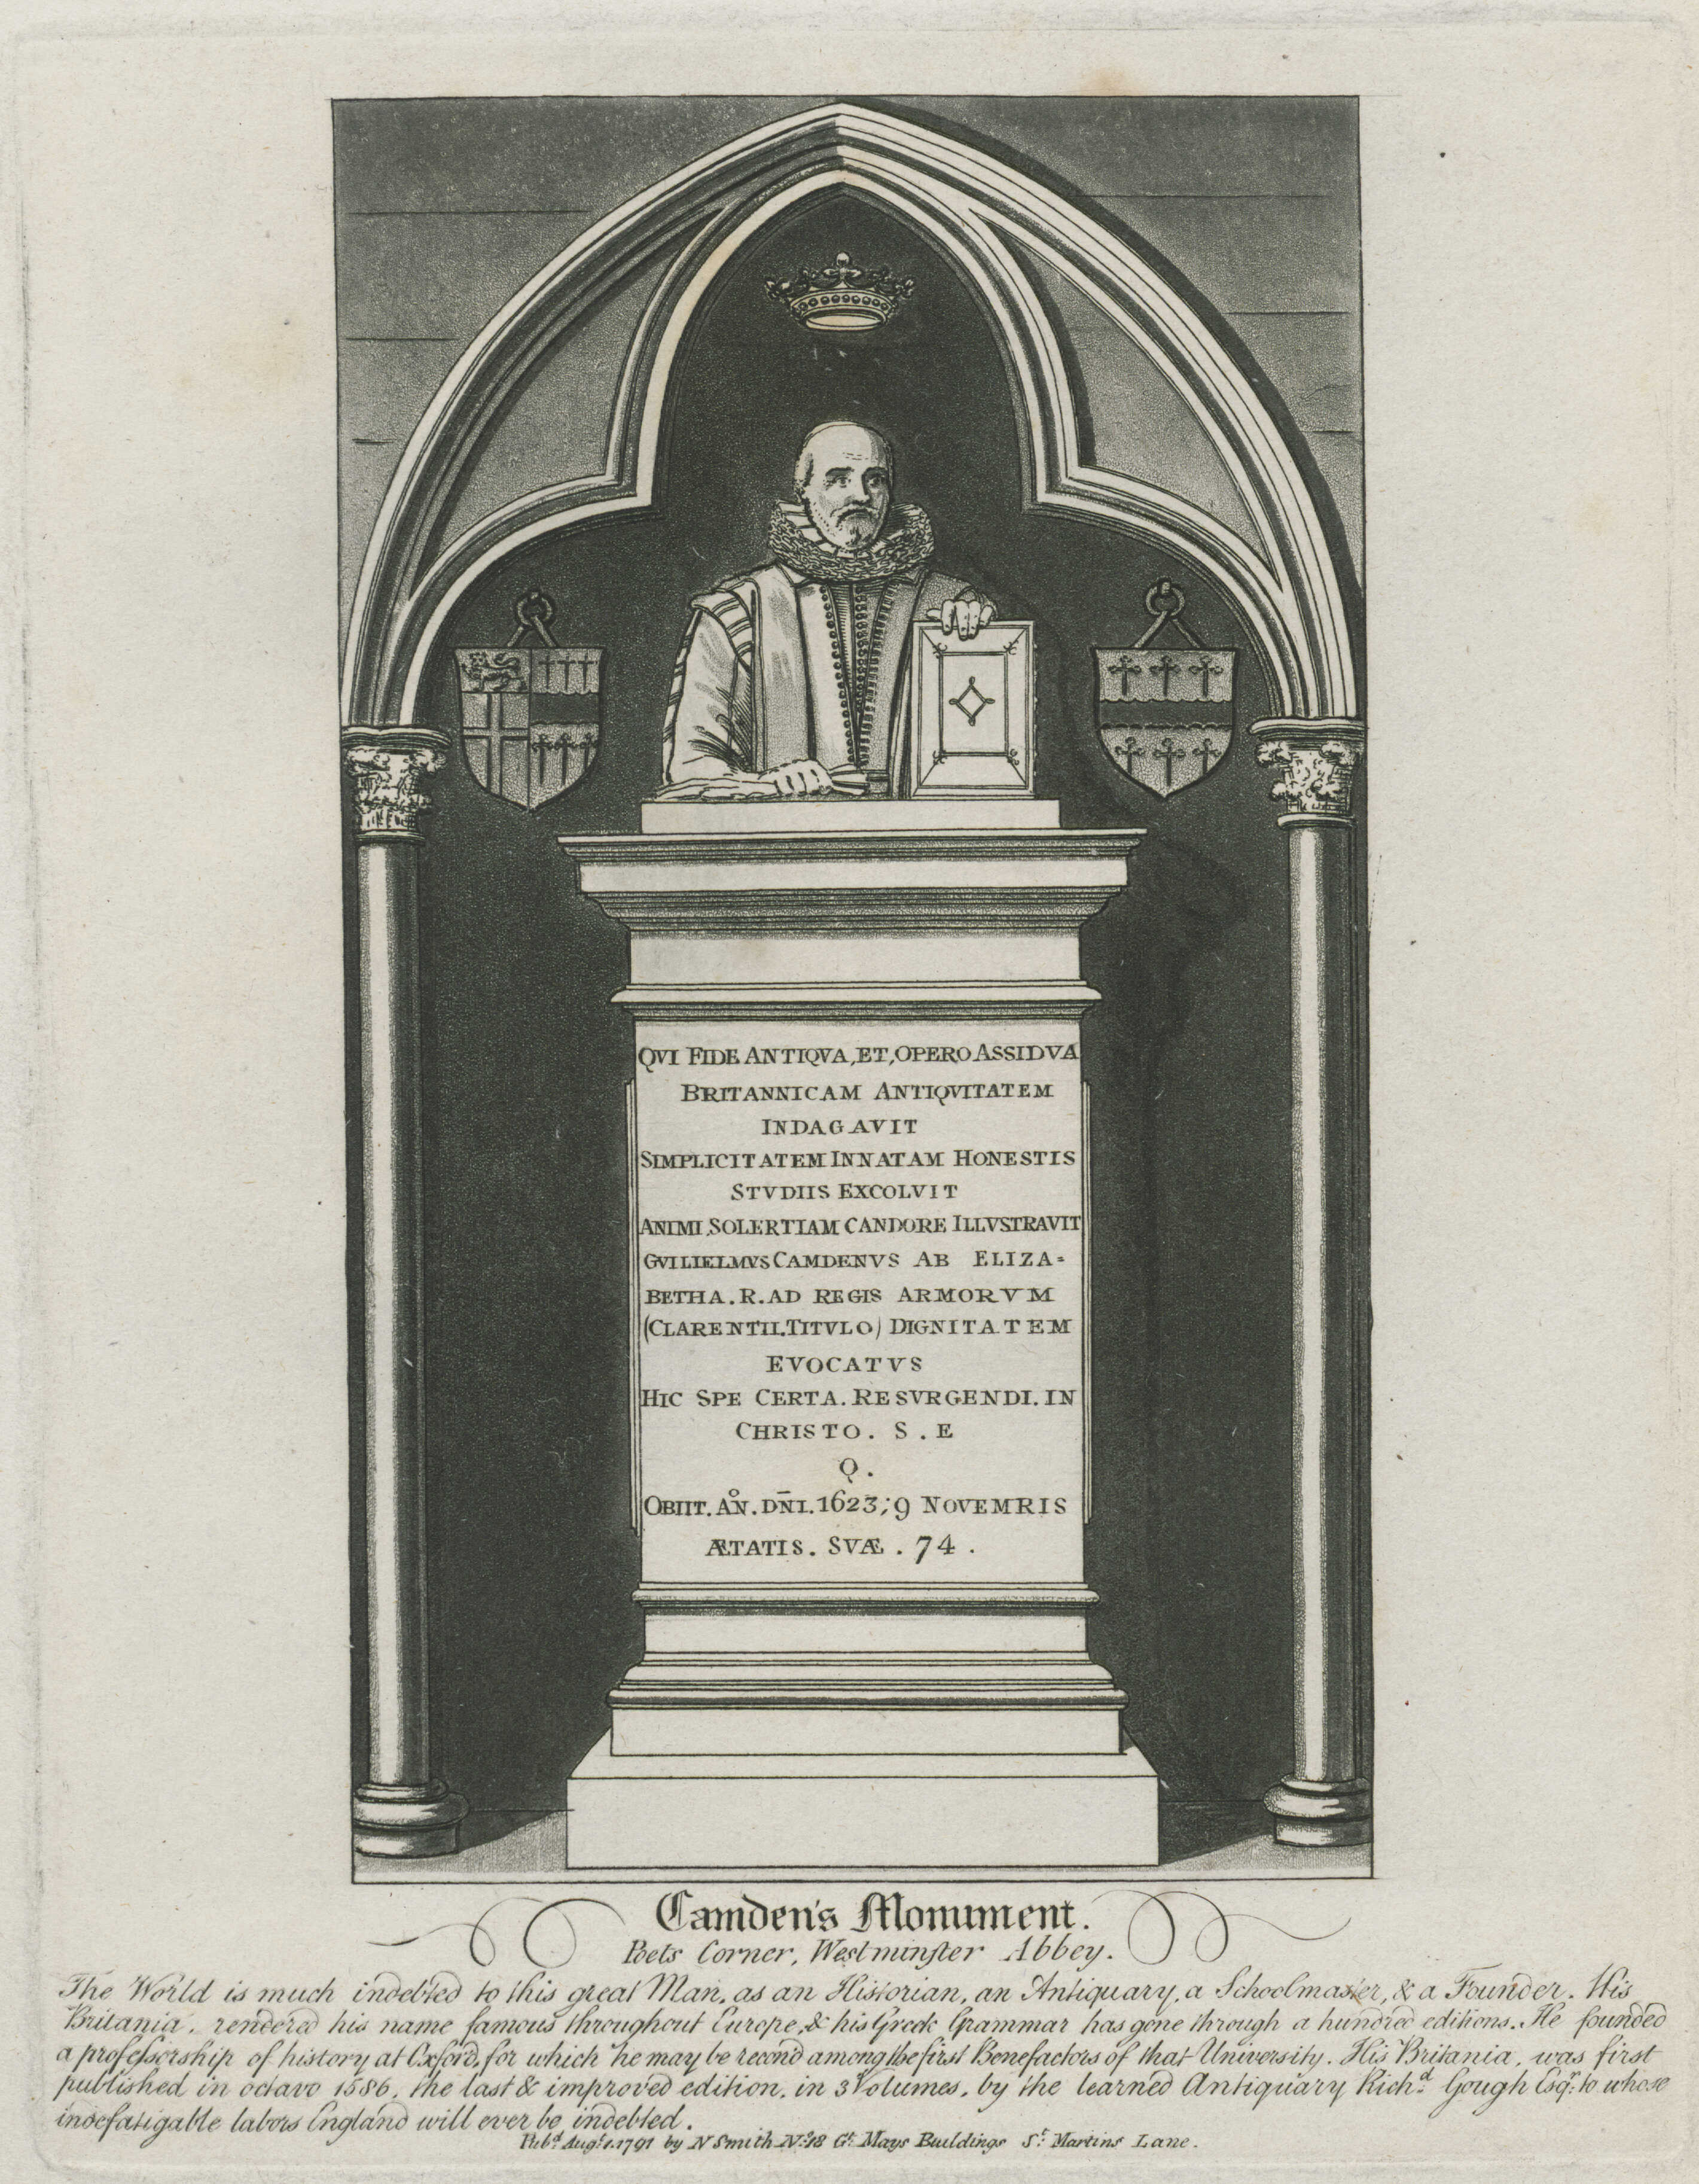 18-camdens-monument-poets-corner-westminster-abbey